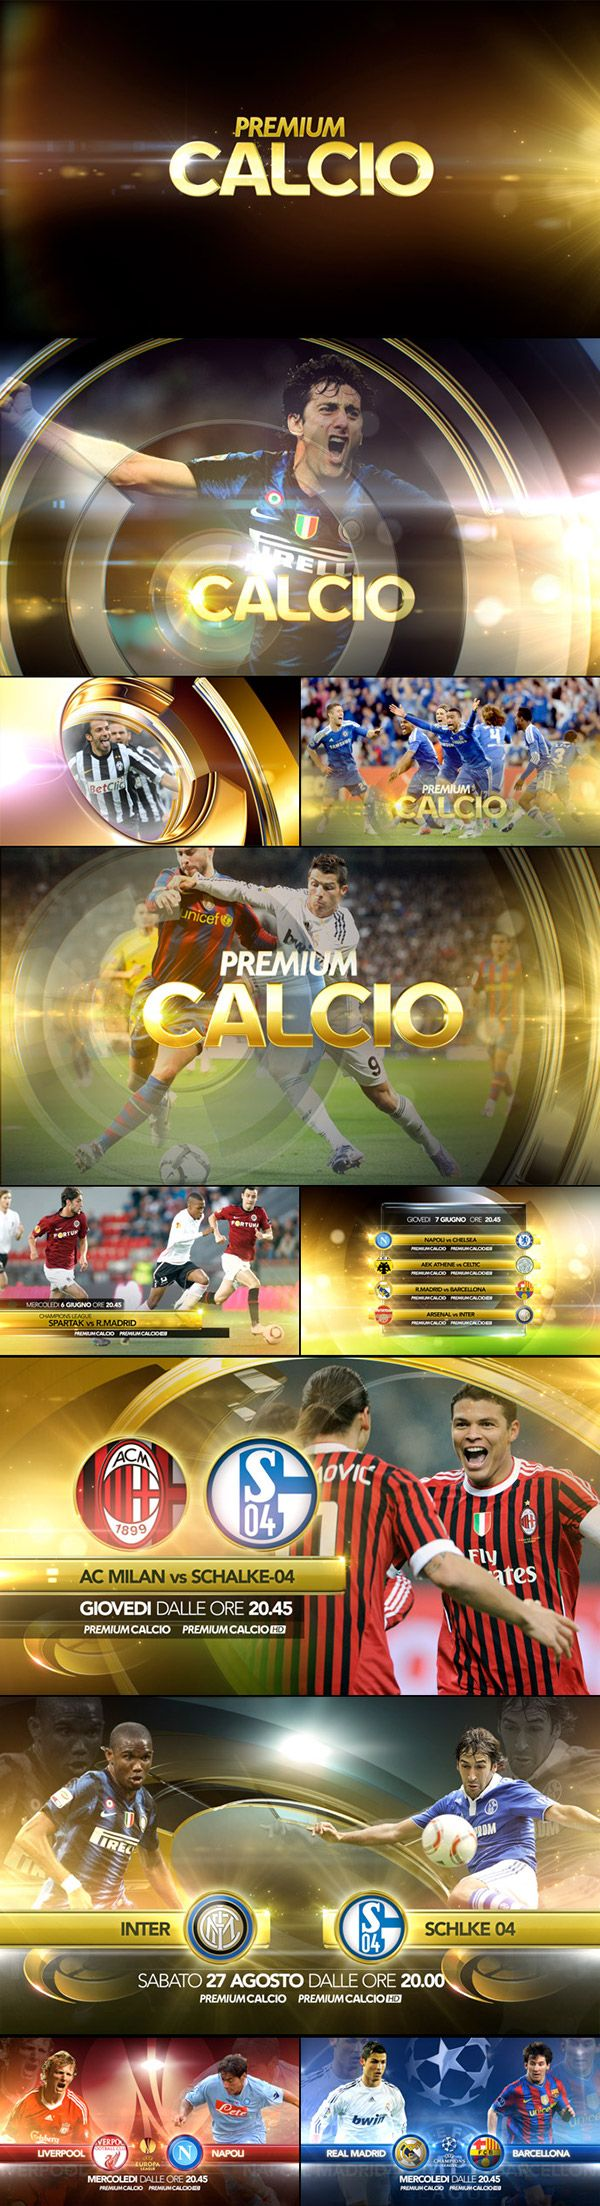 Premium Calcio is a package of 10 Mediaset Premium pay TV channels almost exclusively dedicated to this sport. It offers live matches on real-time and its package includes the whole Premier League, the Champions League, the UEFA Europe League exclusively,…